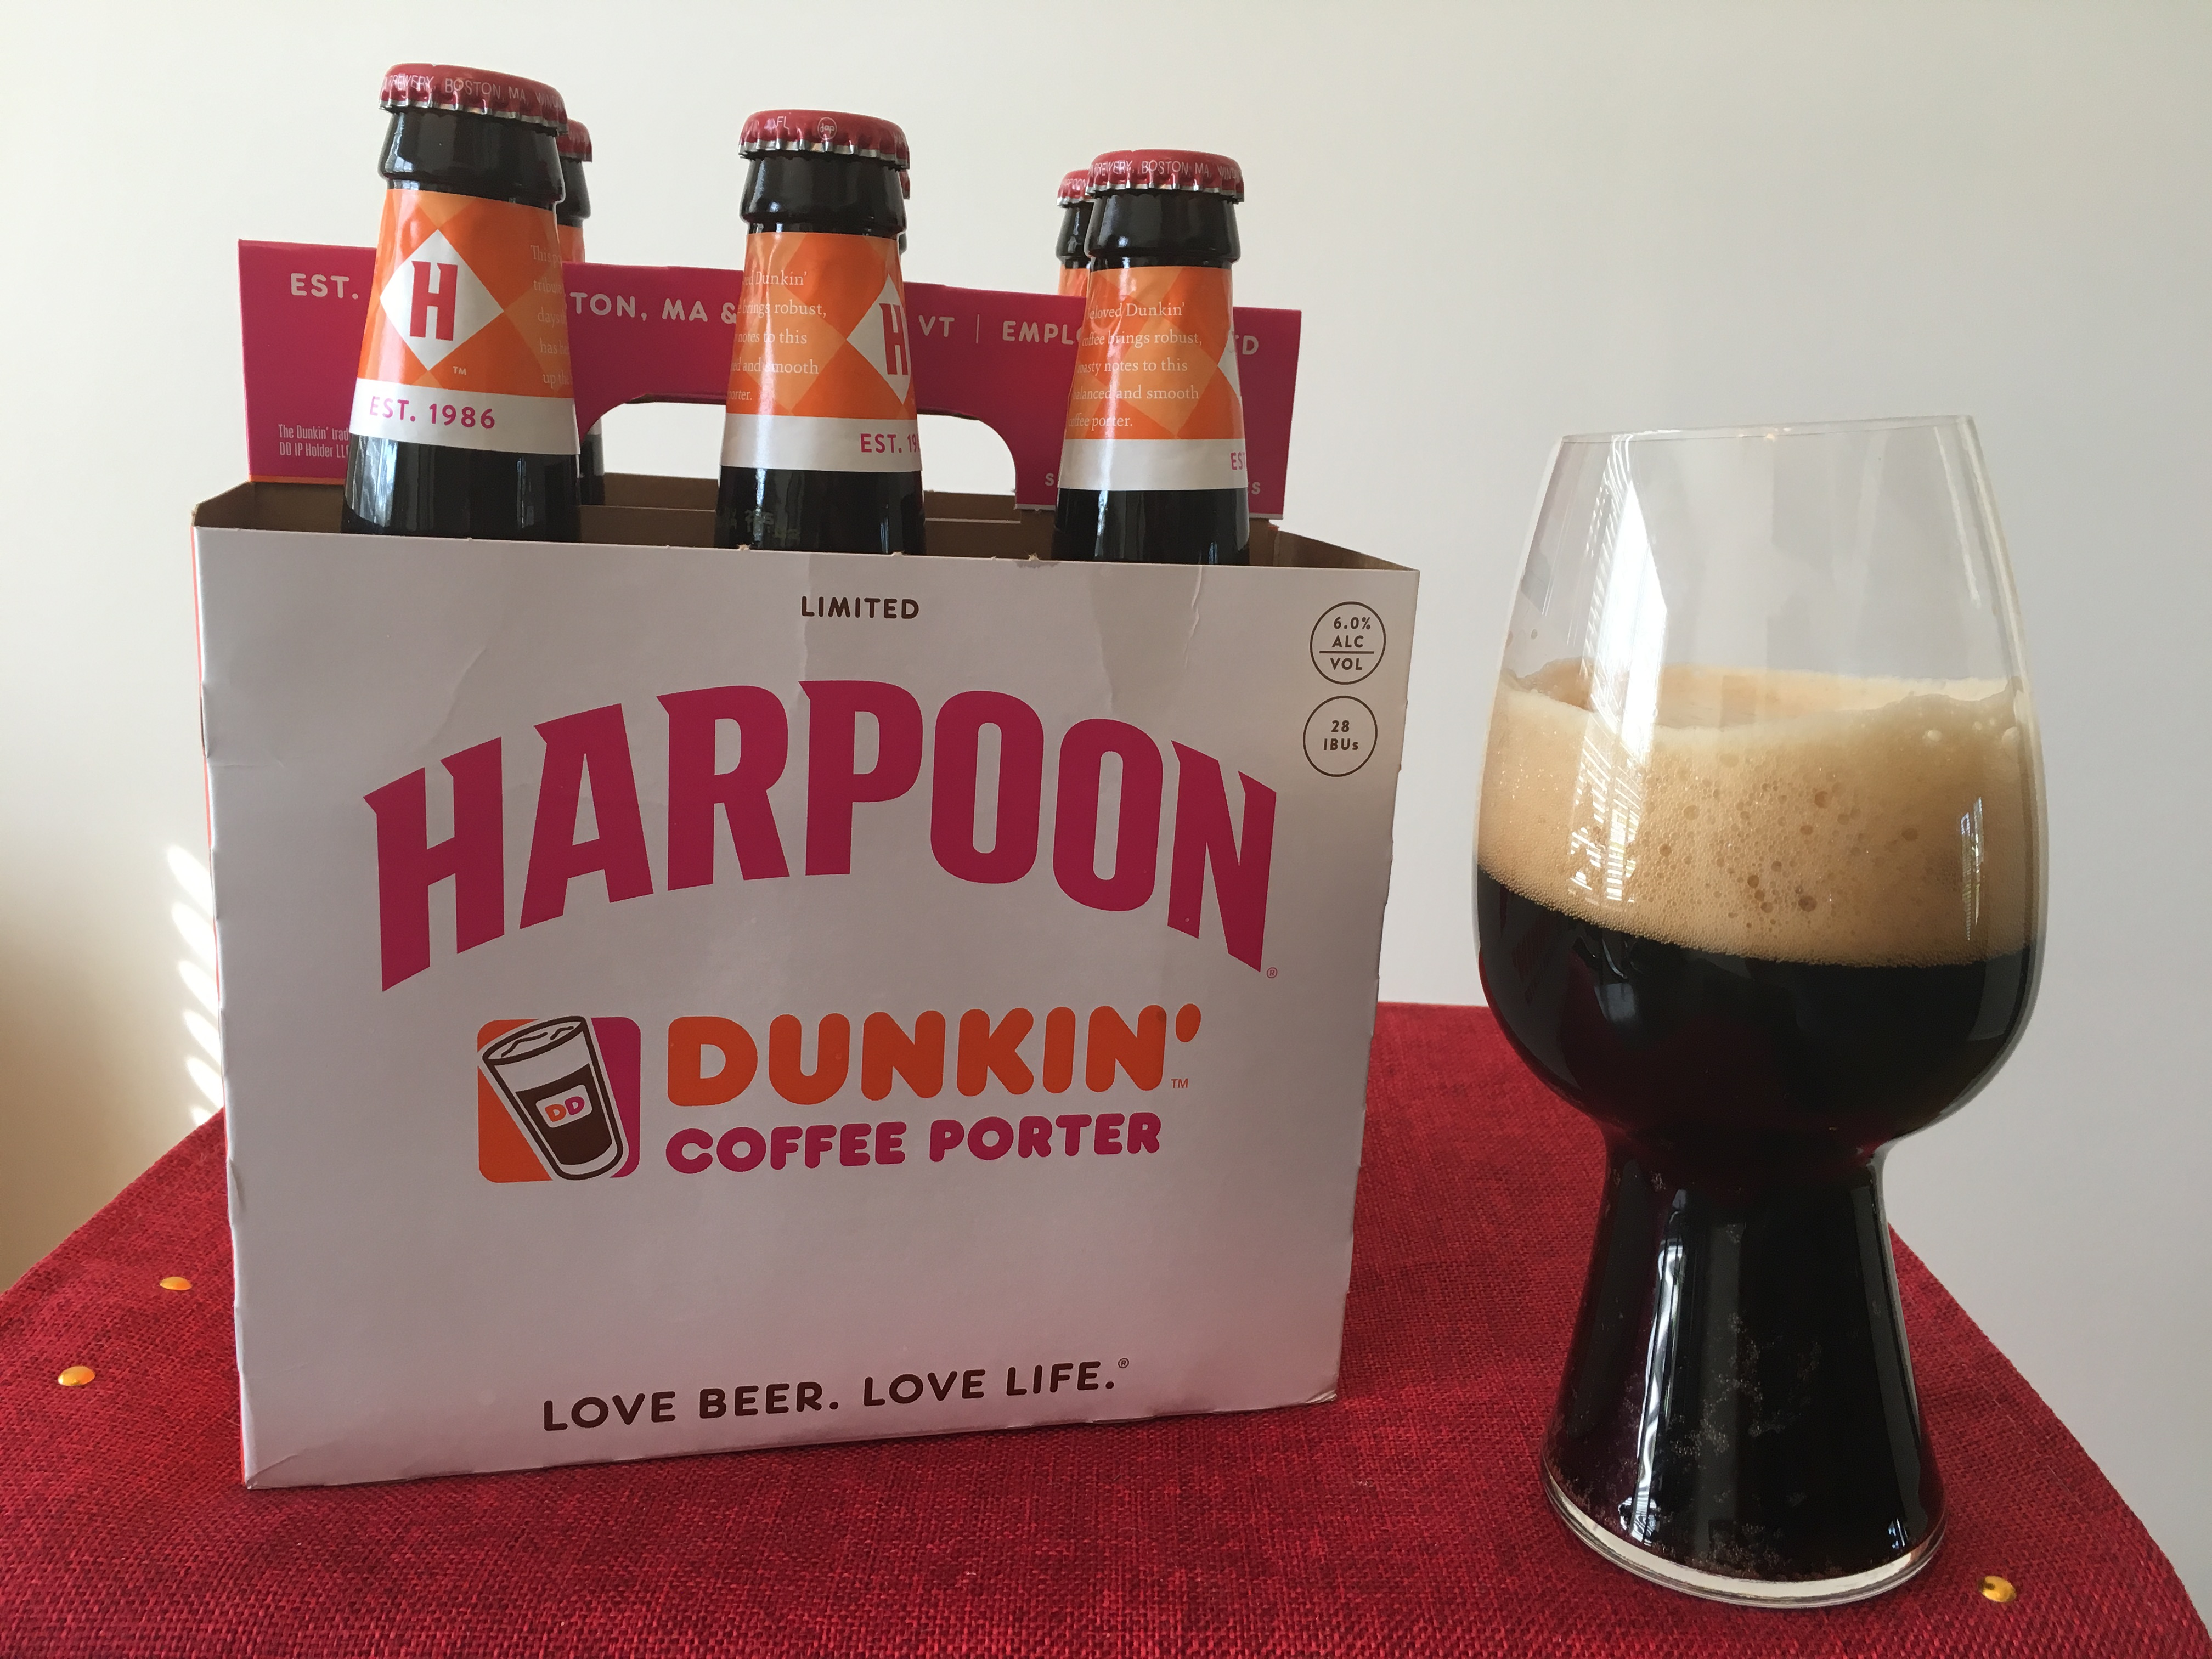 Dunkin-donuts-Coffee-Porter